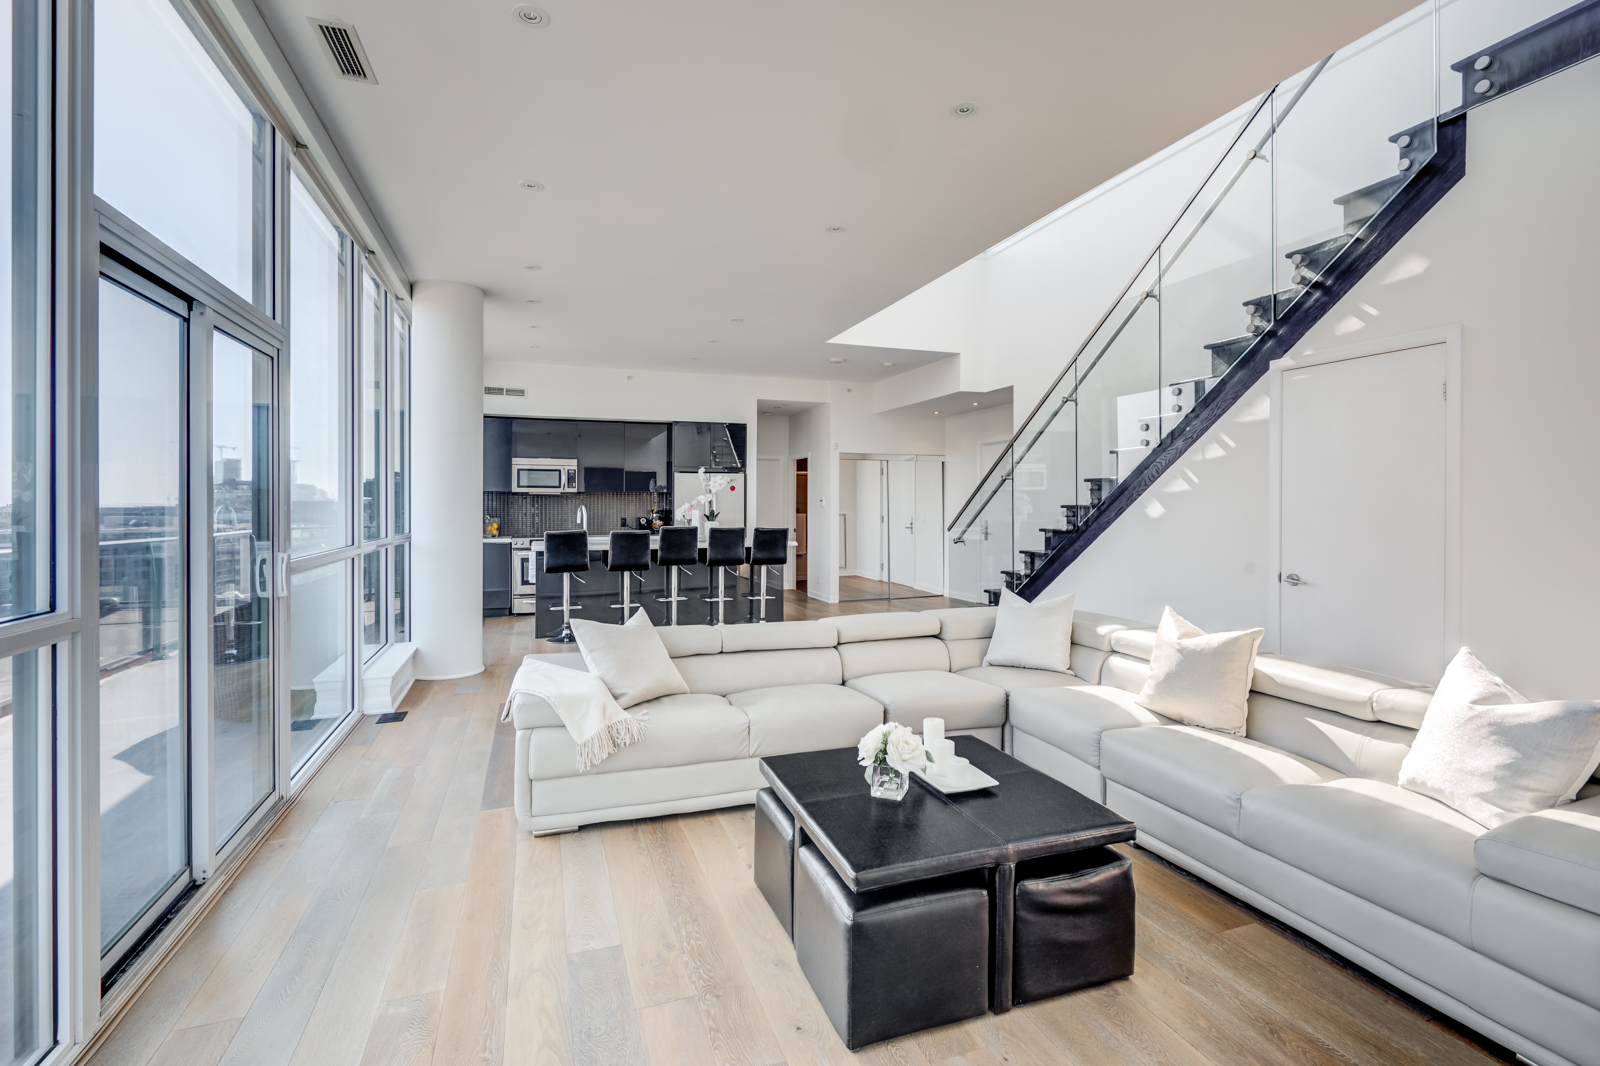 Living room and kitchen photo of Victory Lofts - 478 King St W Toronto Penthouse Suite